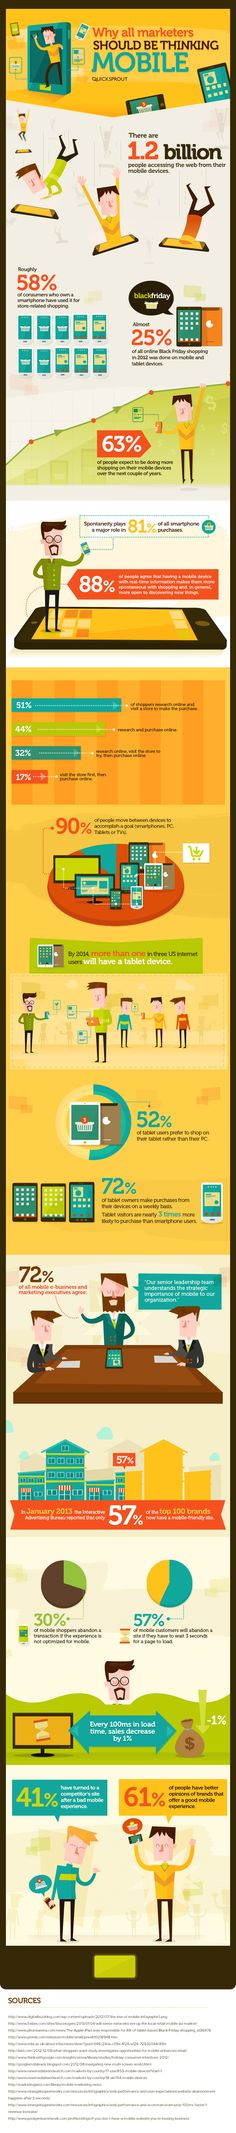 Does your business have a mobile game plan?